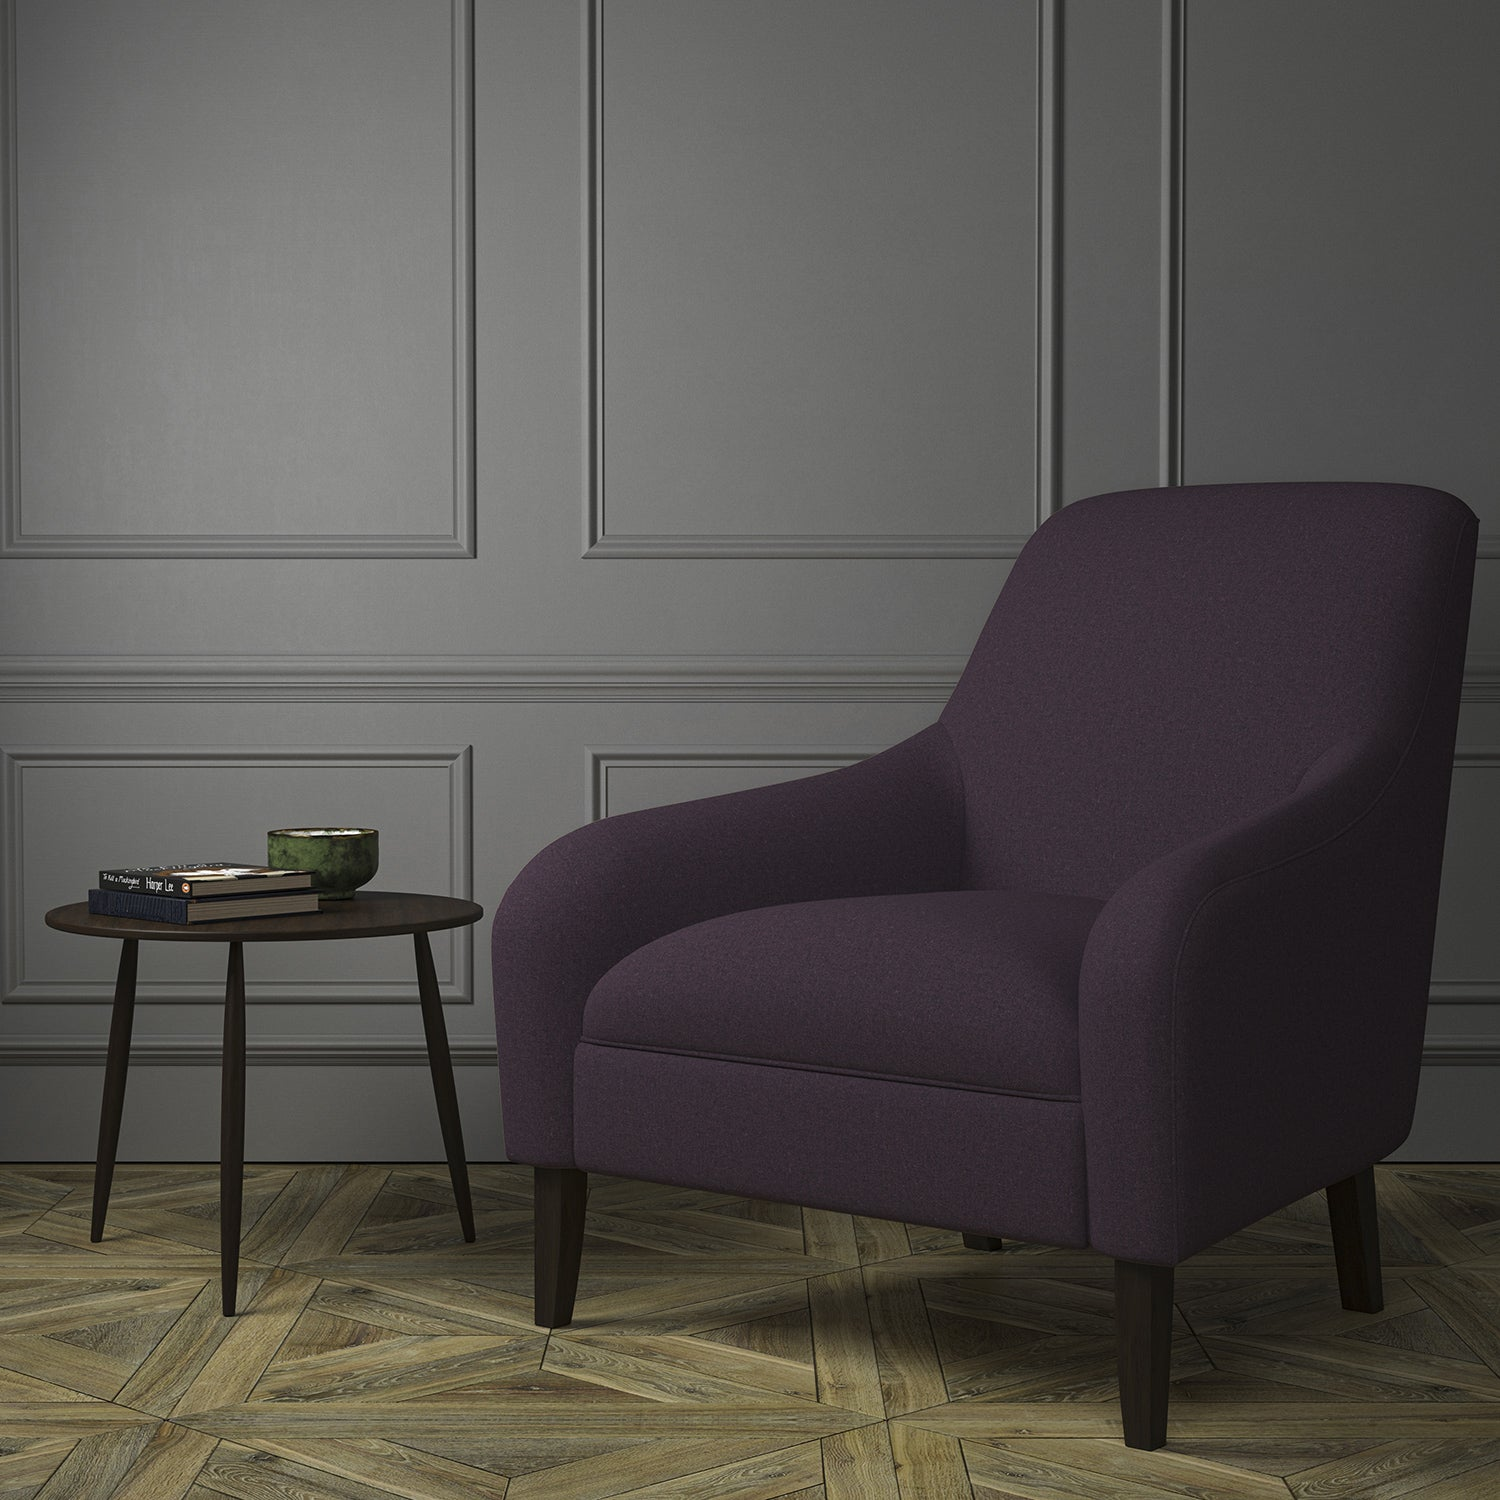 Chair upholstered in a luxury Scottish plain purple wool upholstery fabric